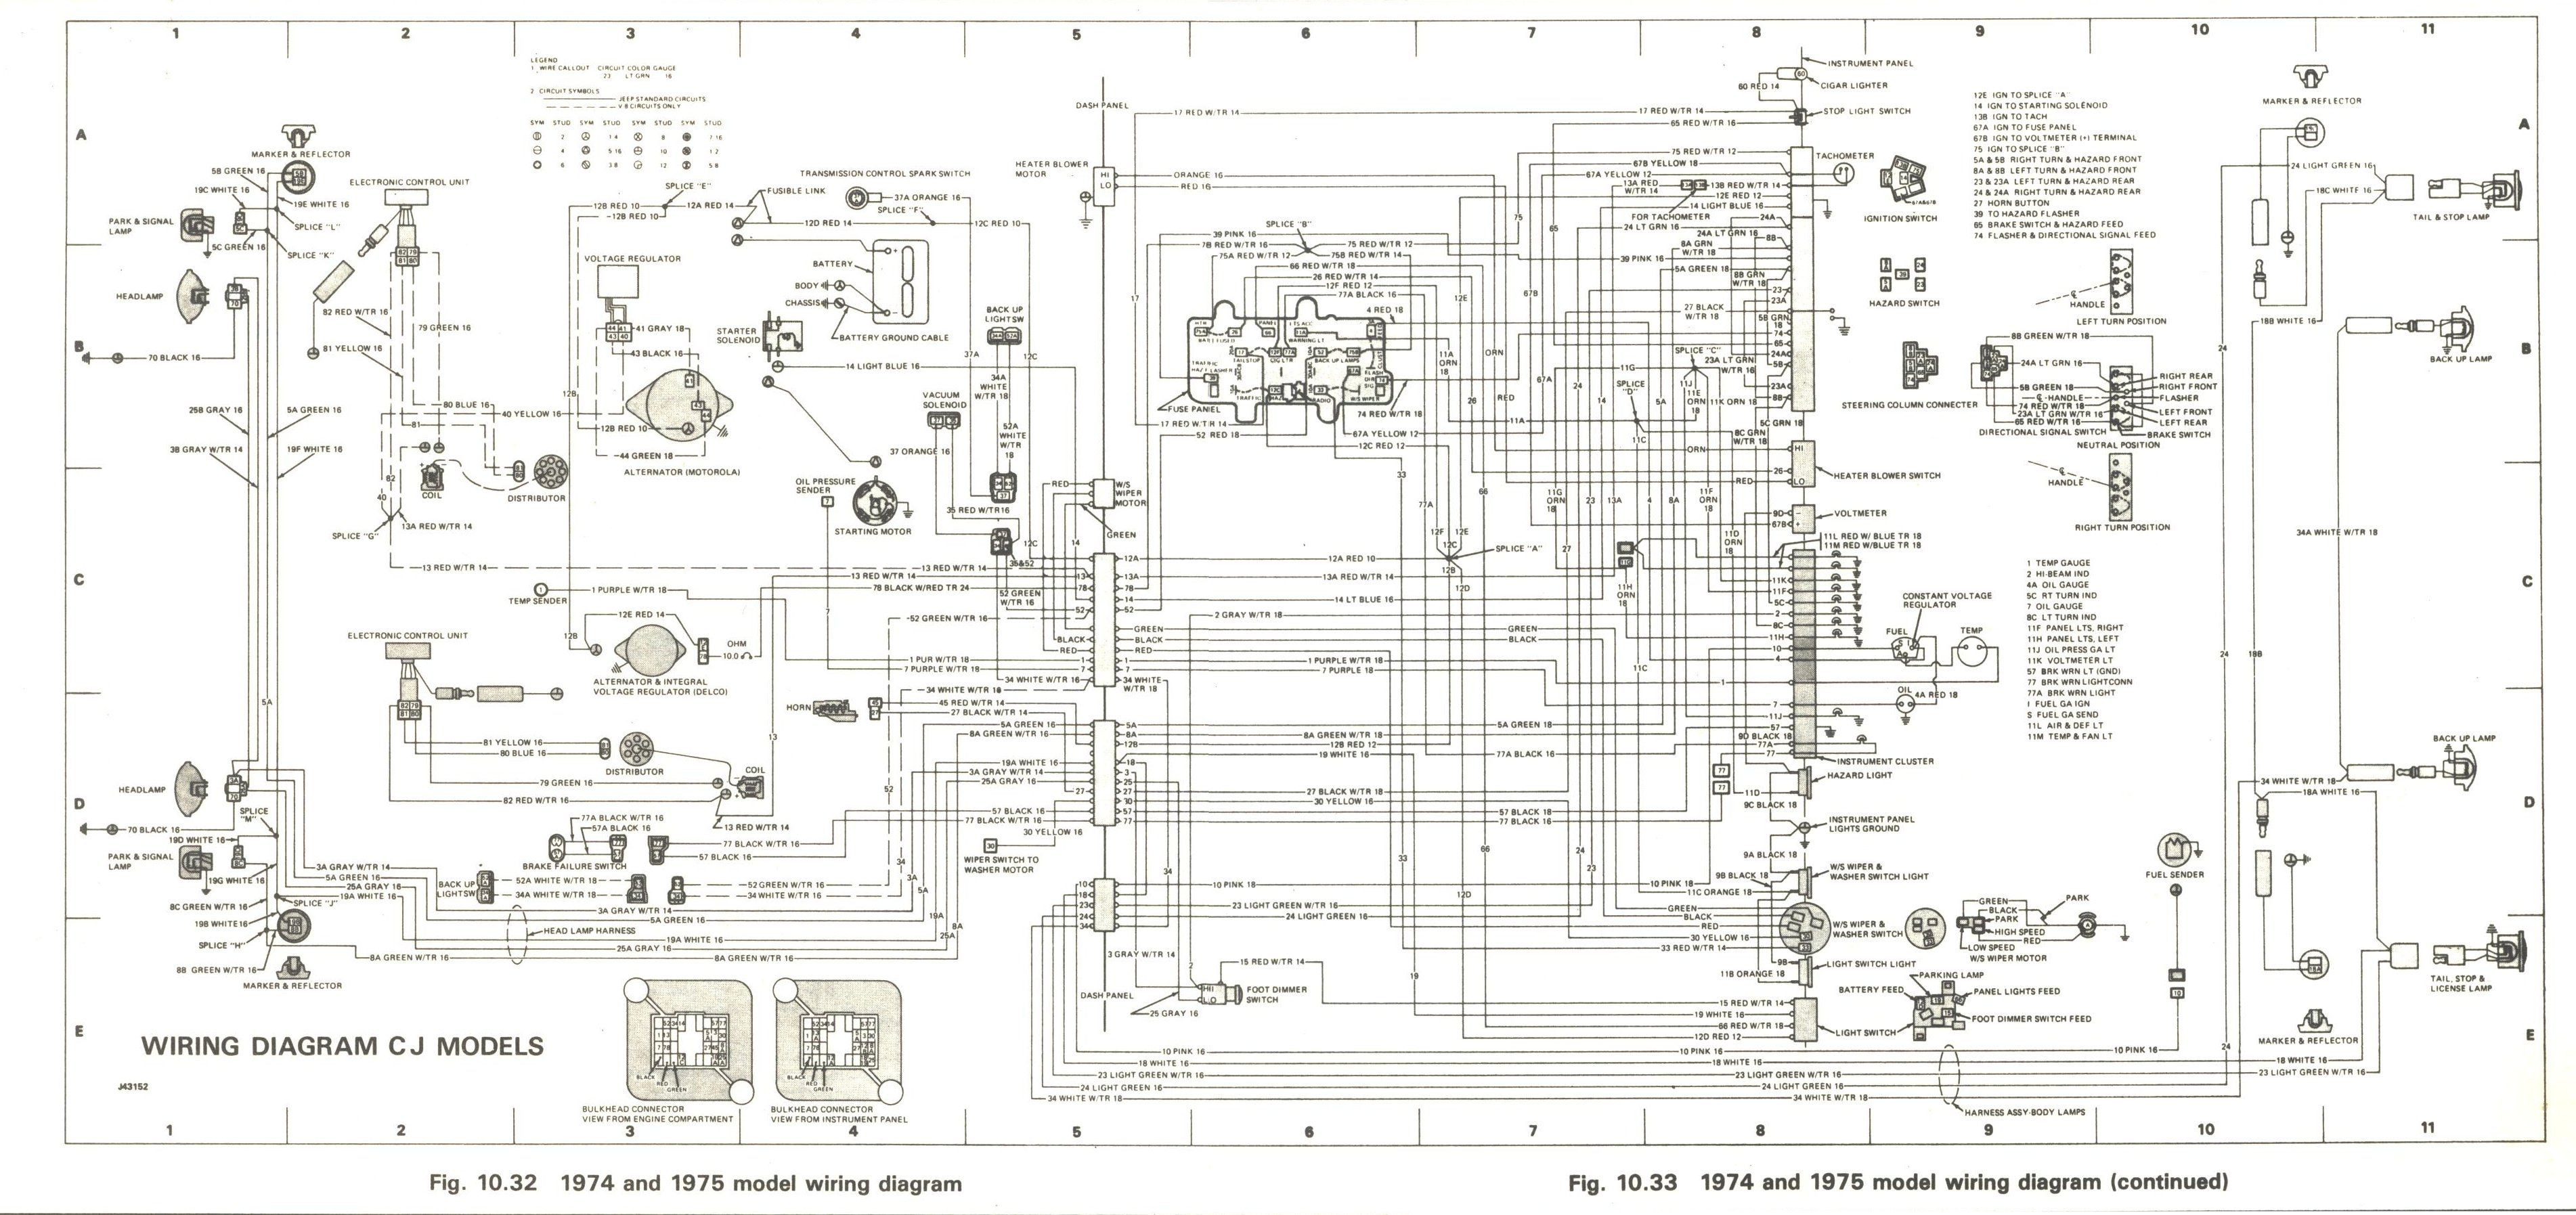 cj5 wiring diagram cj5 image wiring diagram 1974 cj5 wiring diagram 1974 wiring diagrams on cj5 wiring diagram